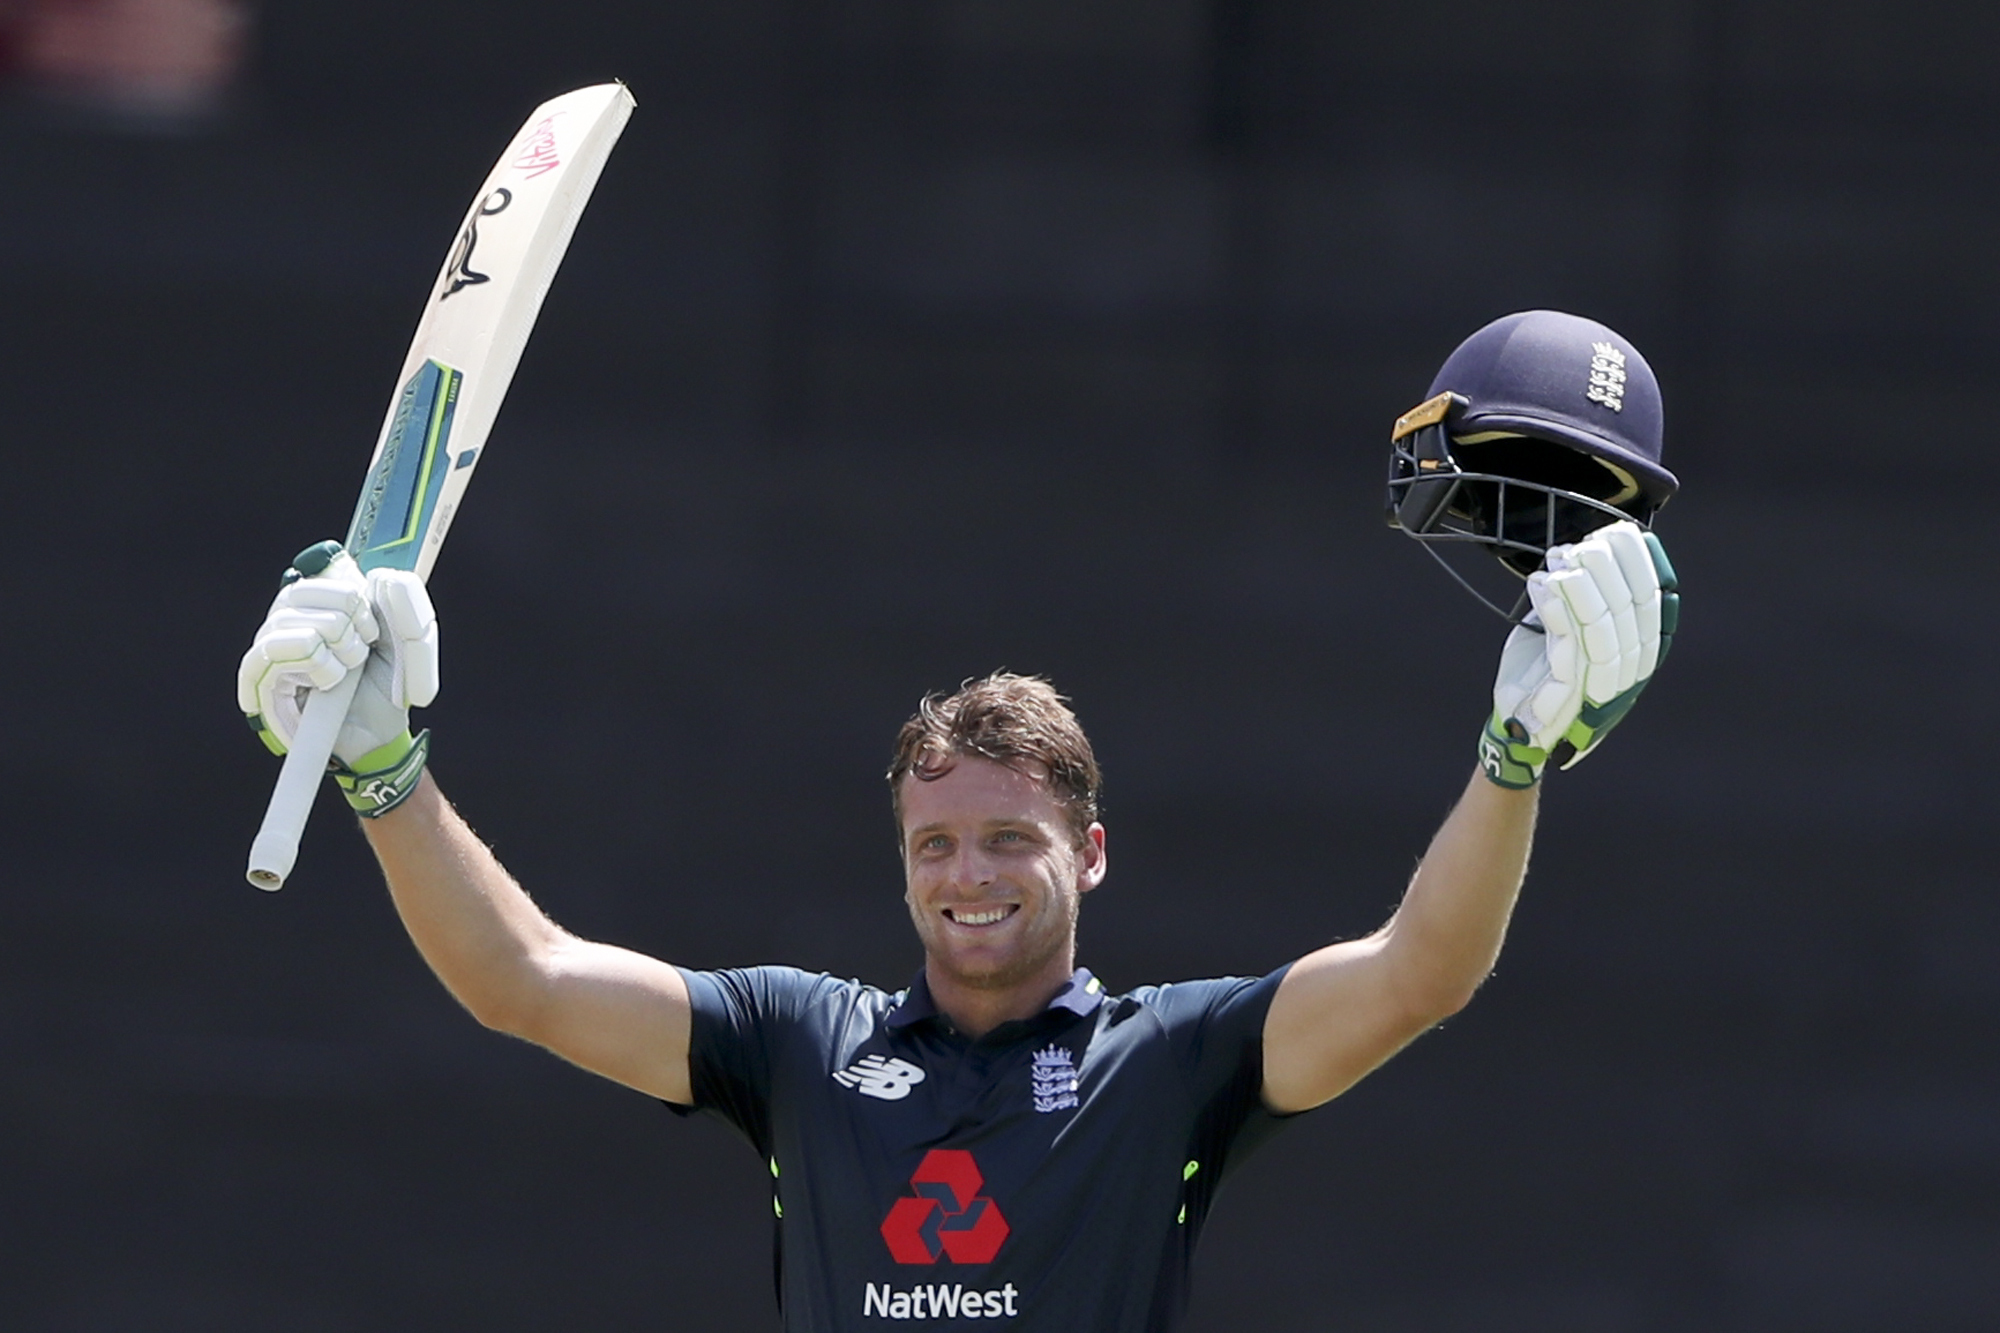 England's Jos Buttler celebrates after he scored a century against West Indies during the fourth One Day International cricket match at the National Stadium in St. George's, Grenada, Wednesday, Feb. 27, 2019. (AP Photo/Ricardo Mazalan).